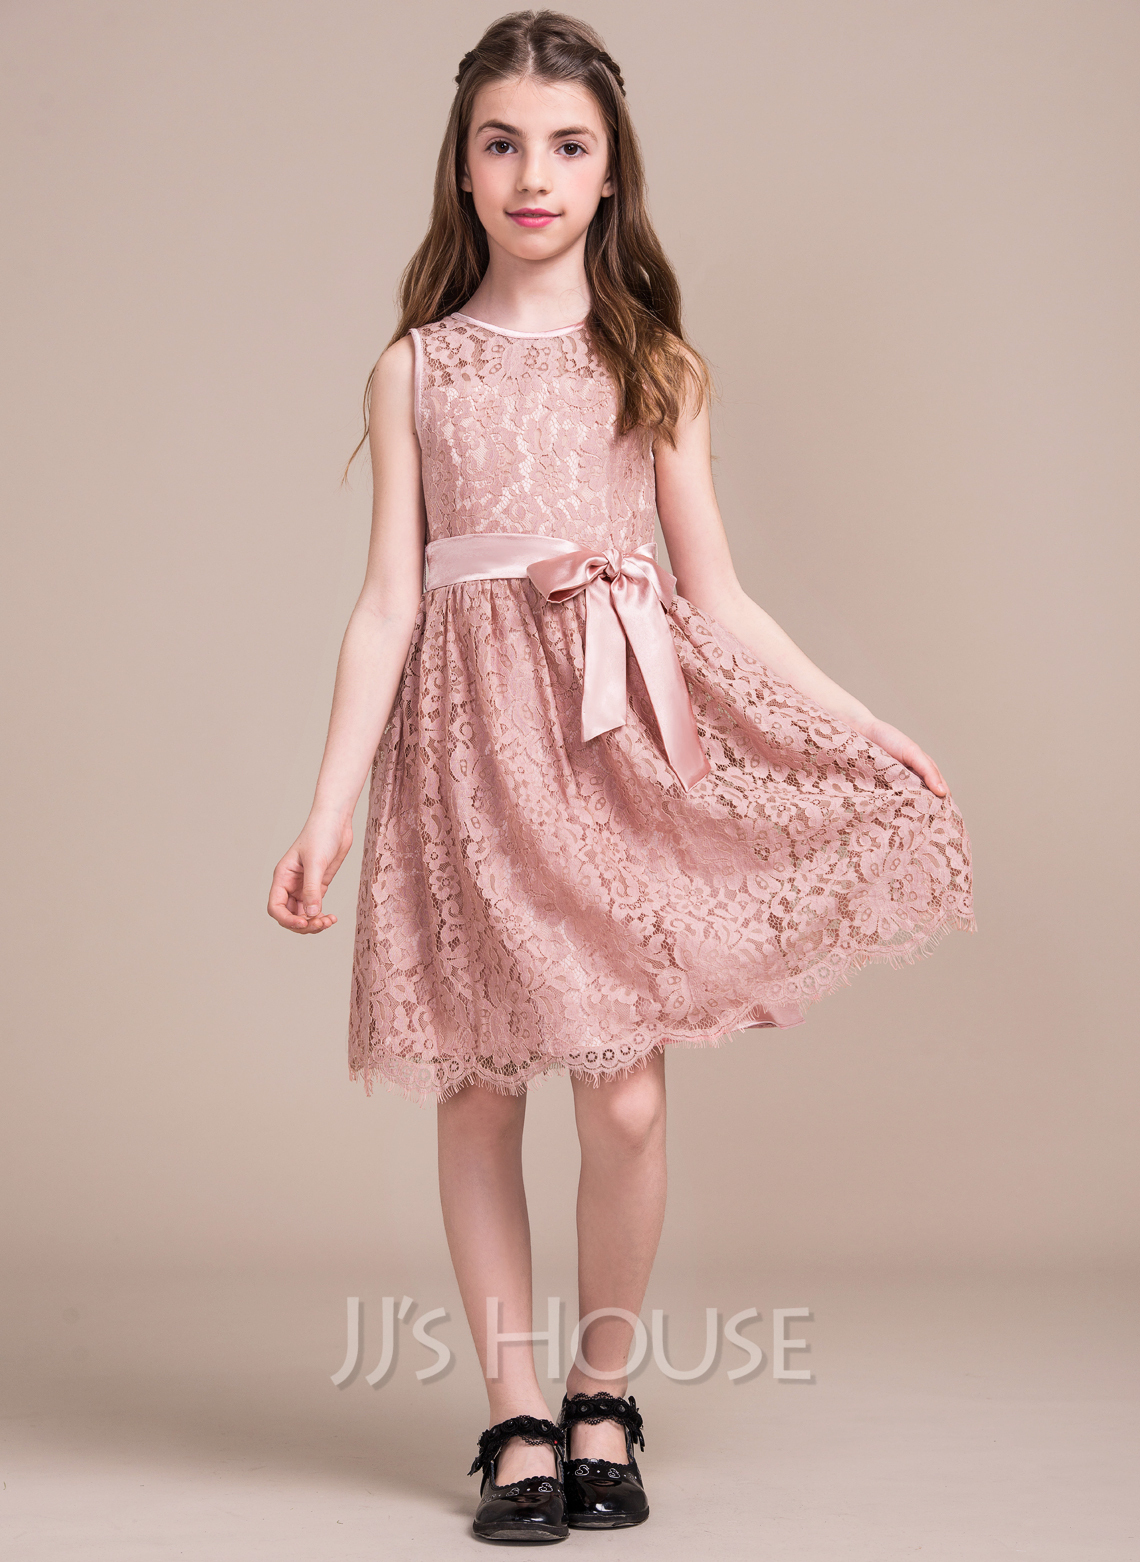 9adcf0ce1f3 A-Line Scoop Neck Knee-Length Lace Junior Bridesmaid Dress With Bow(s.  Loading zoom